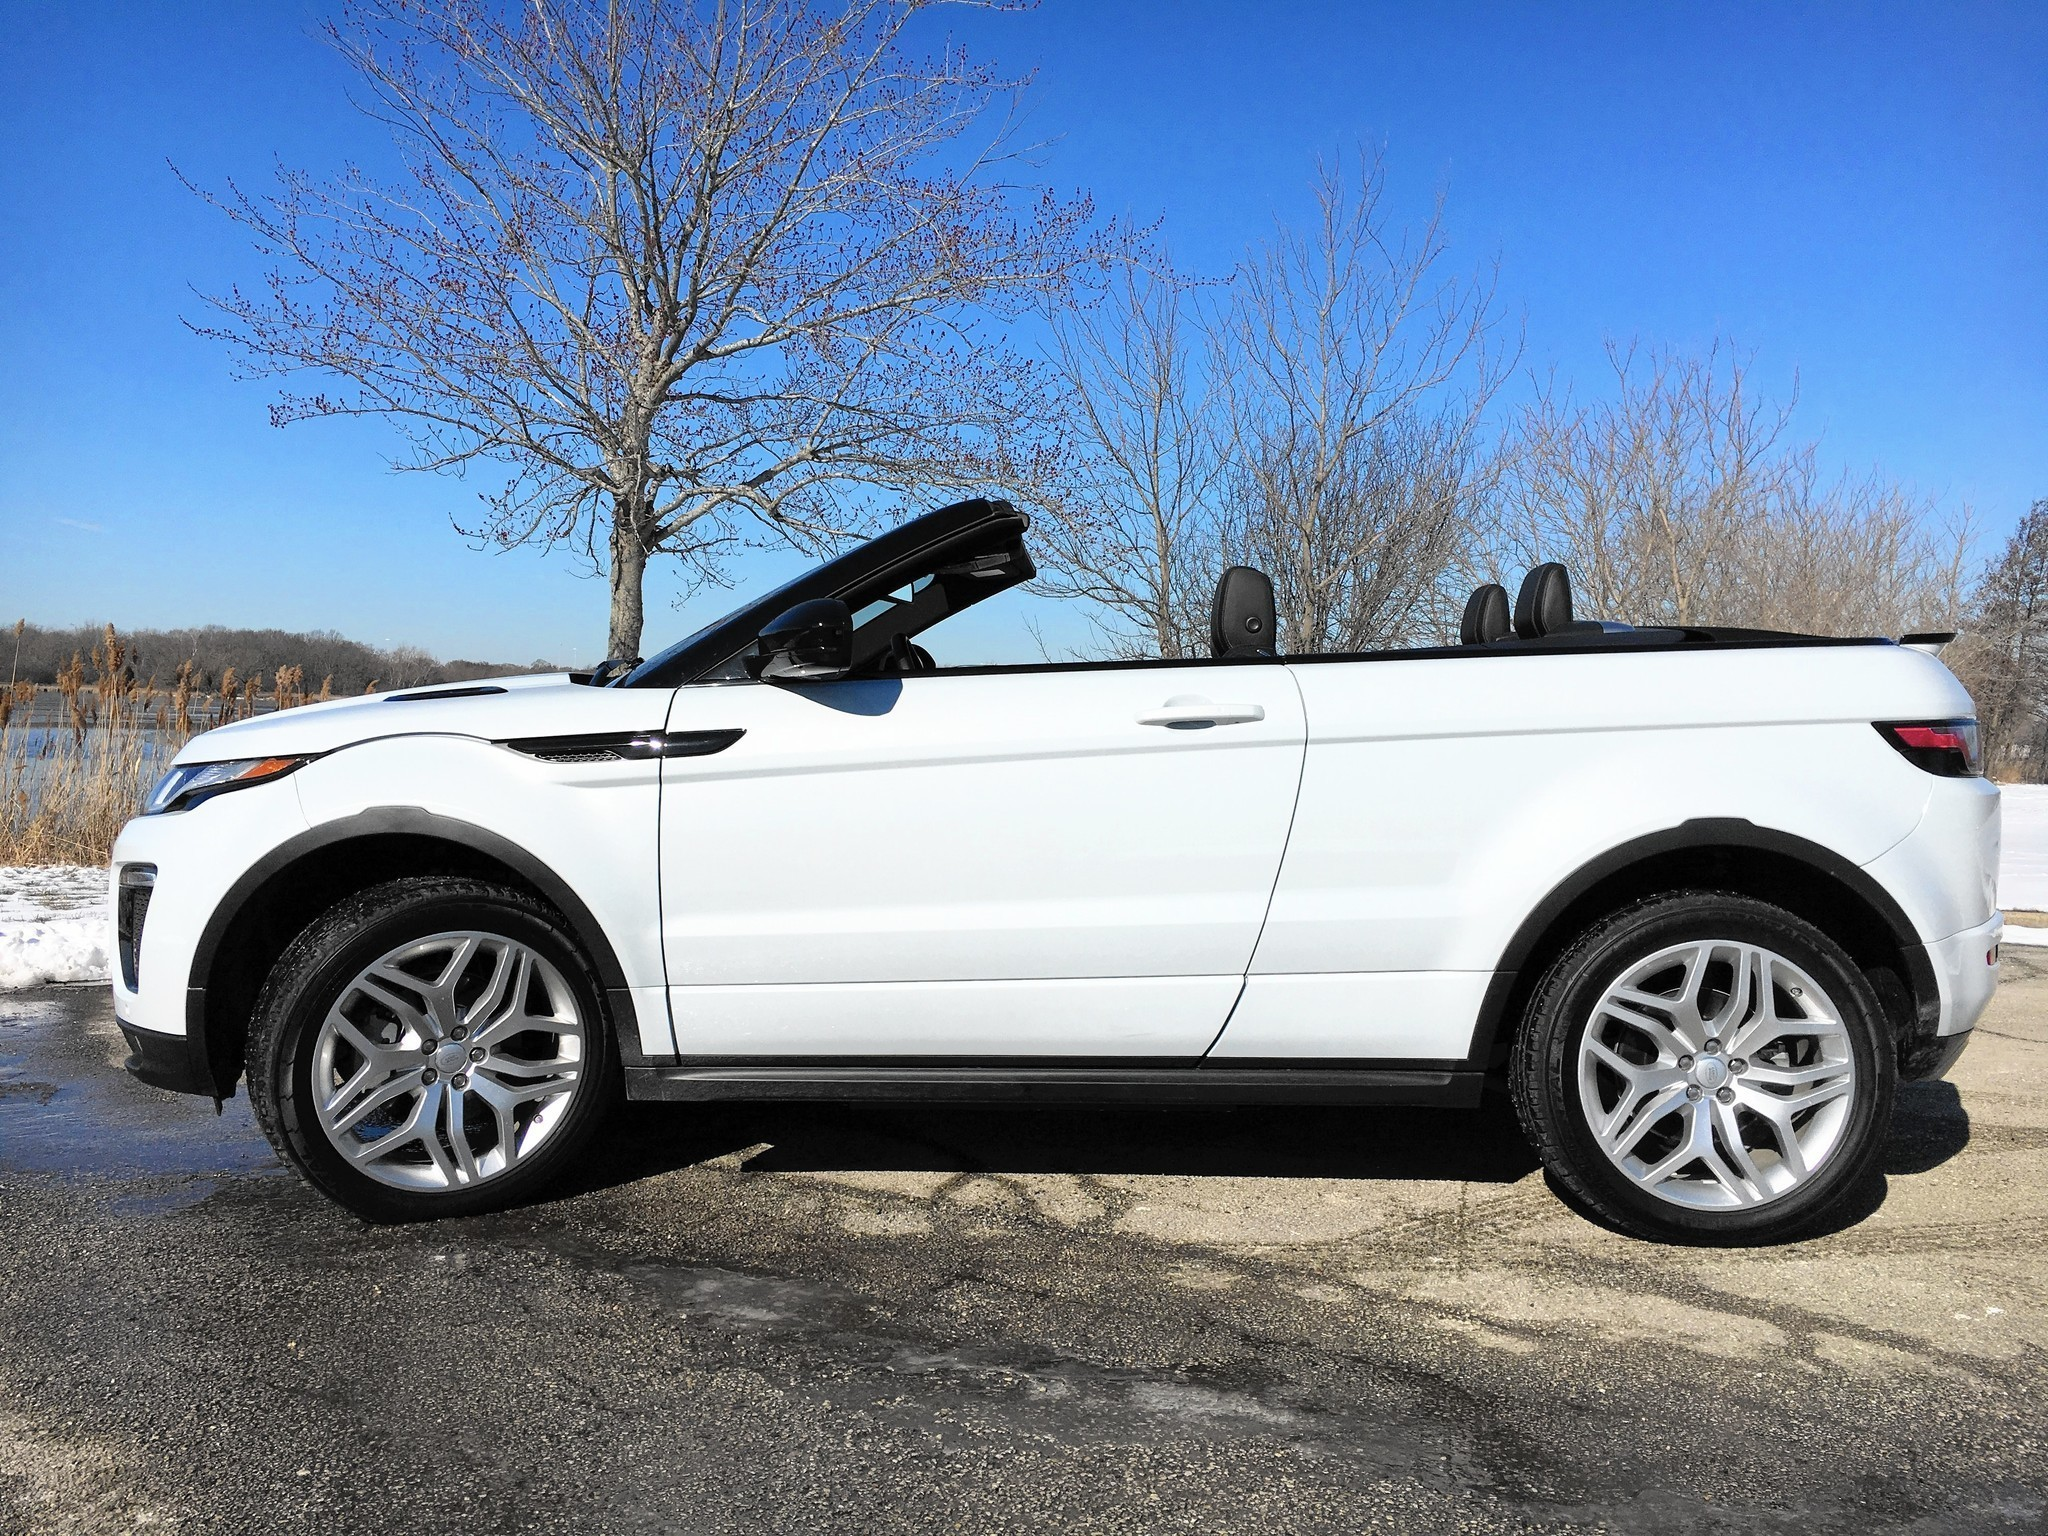 Evoque crossover convertible built to go anywhere except my